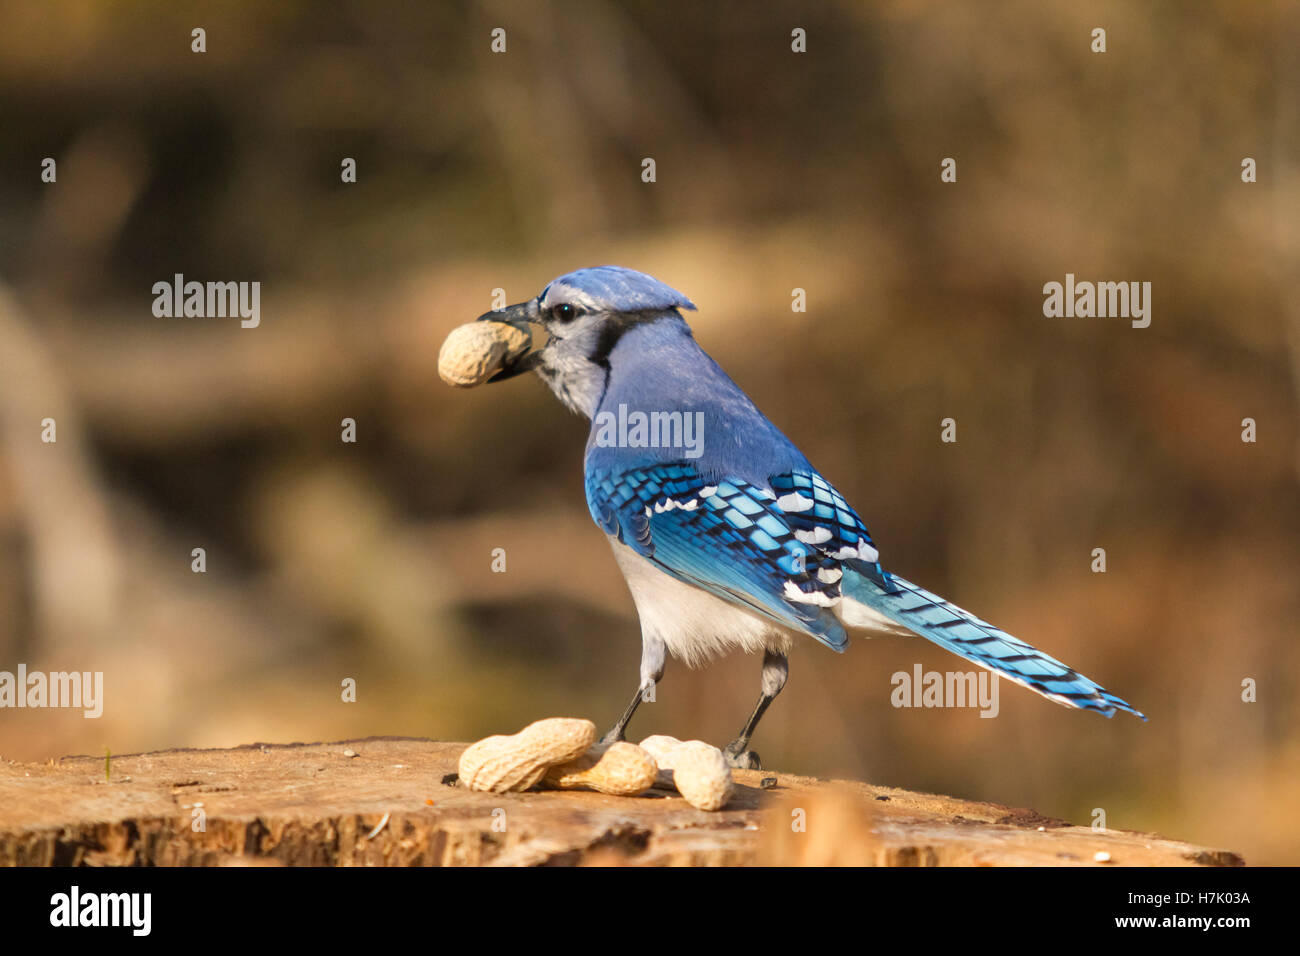 A lone blue jay feeding on some nuts Stock Photo